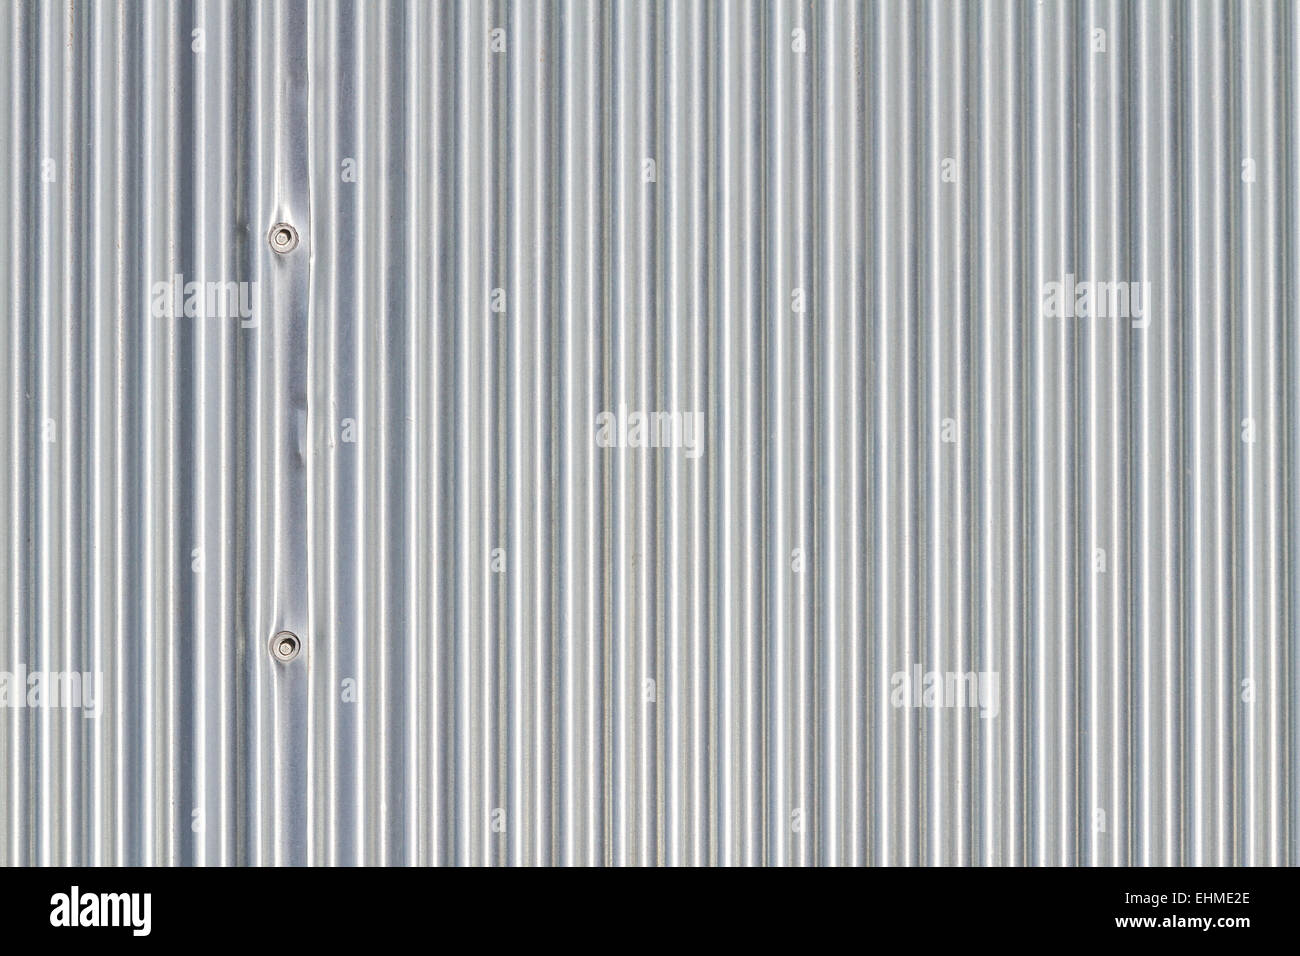 garage door texture. Stripped Texture Metal Background, Garage Door G